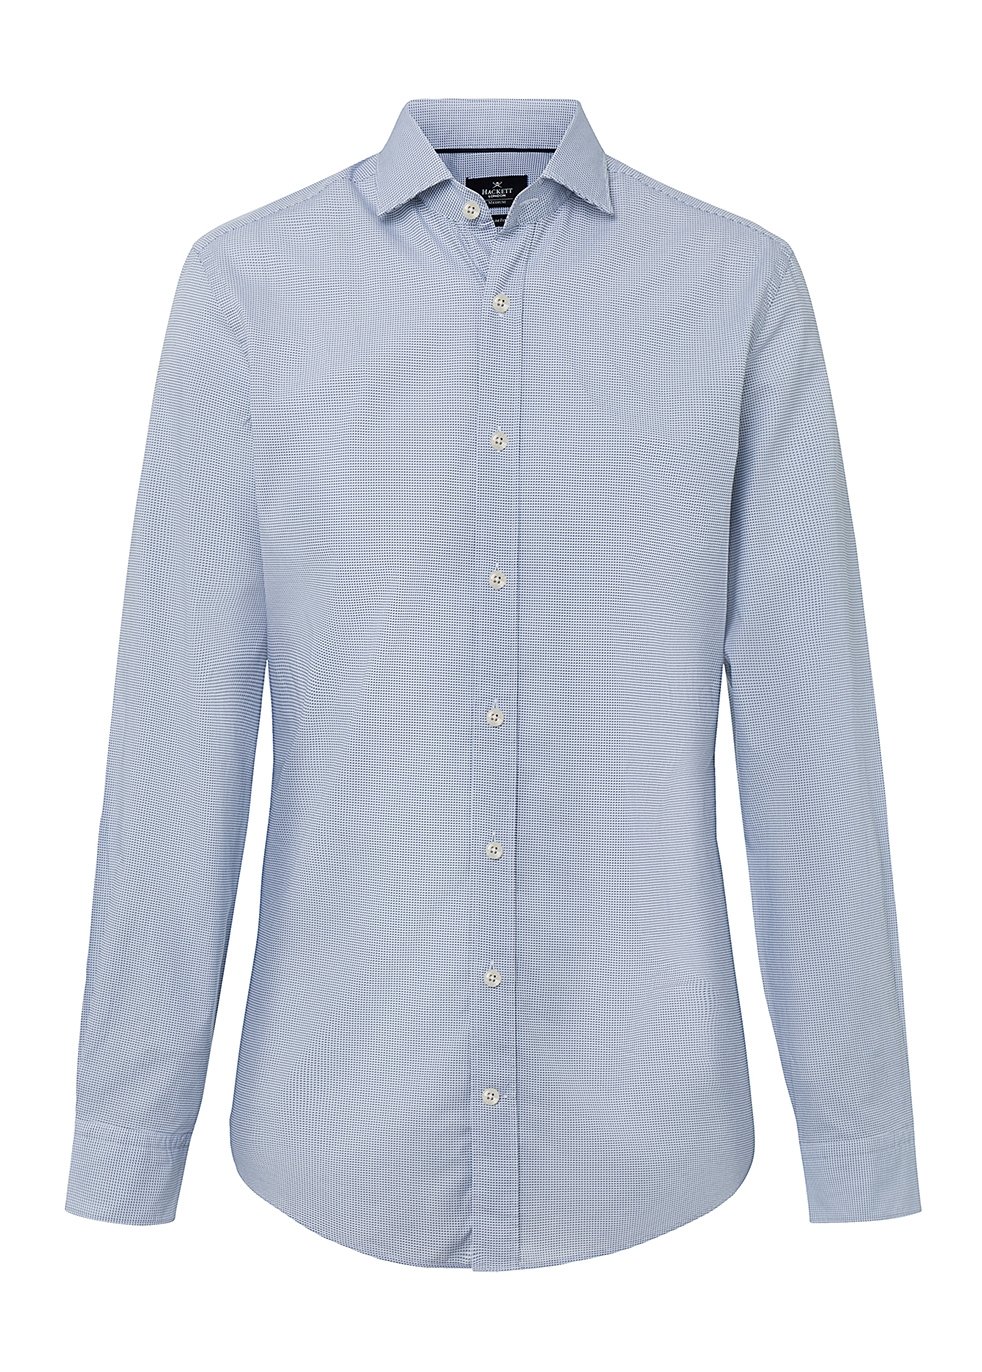 HACKETT MICRO HOUNDSTOOTH PRINT COTTON SHIRT